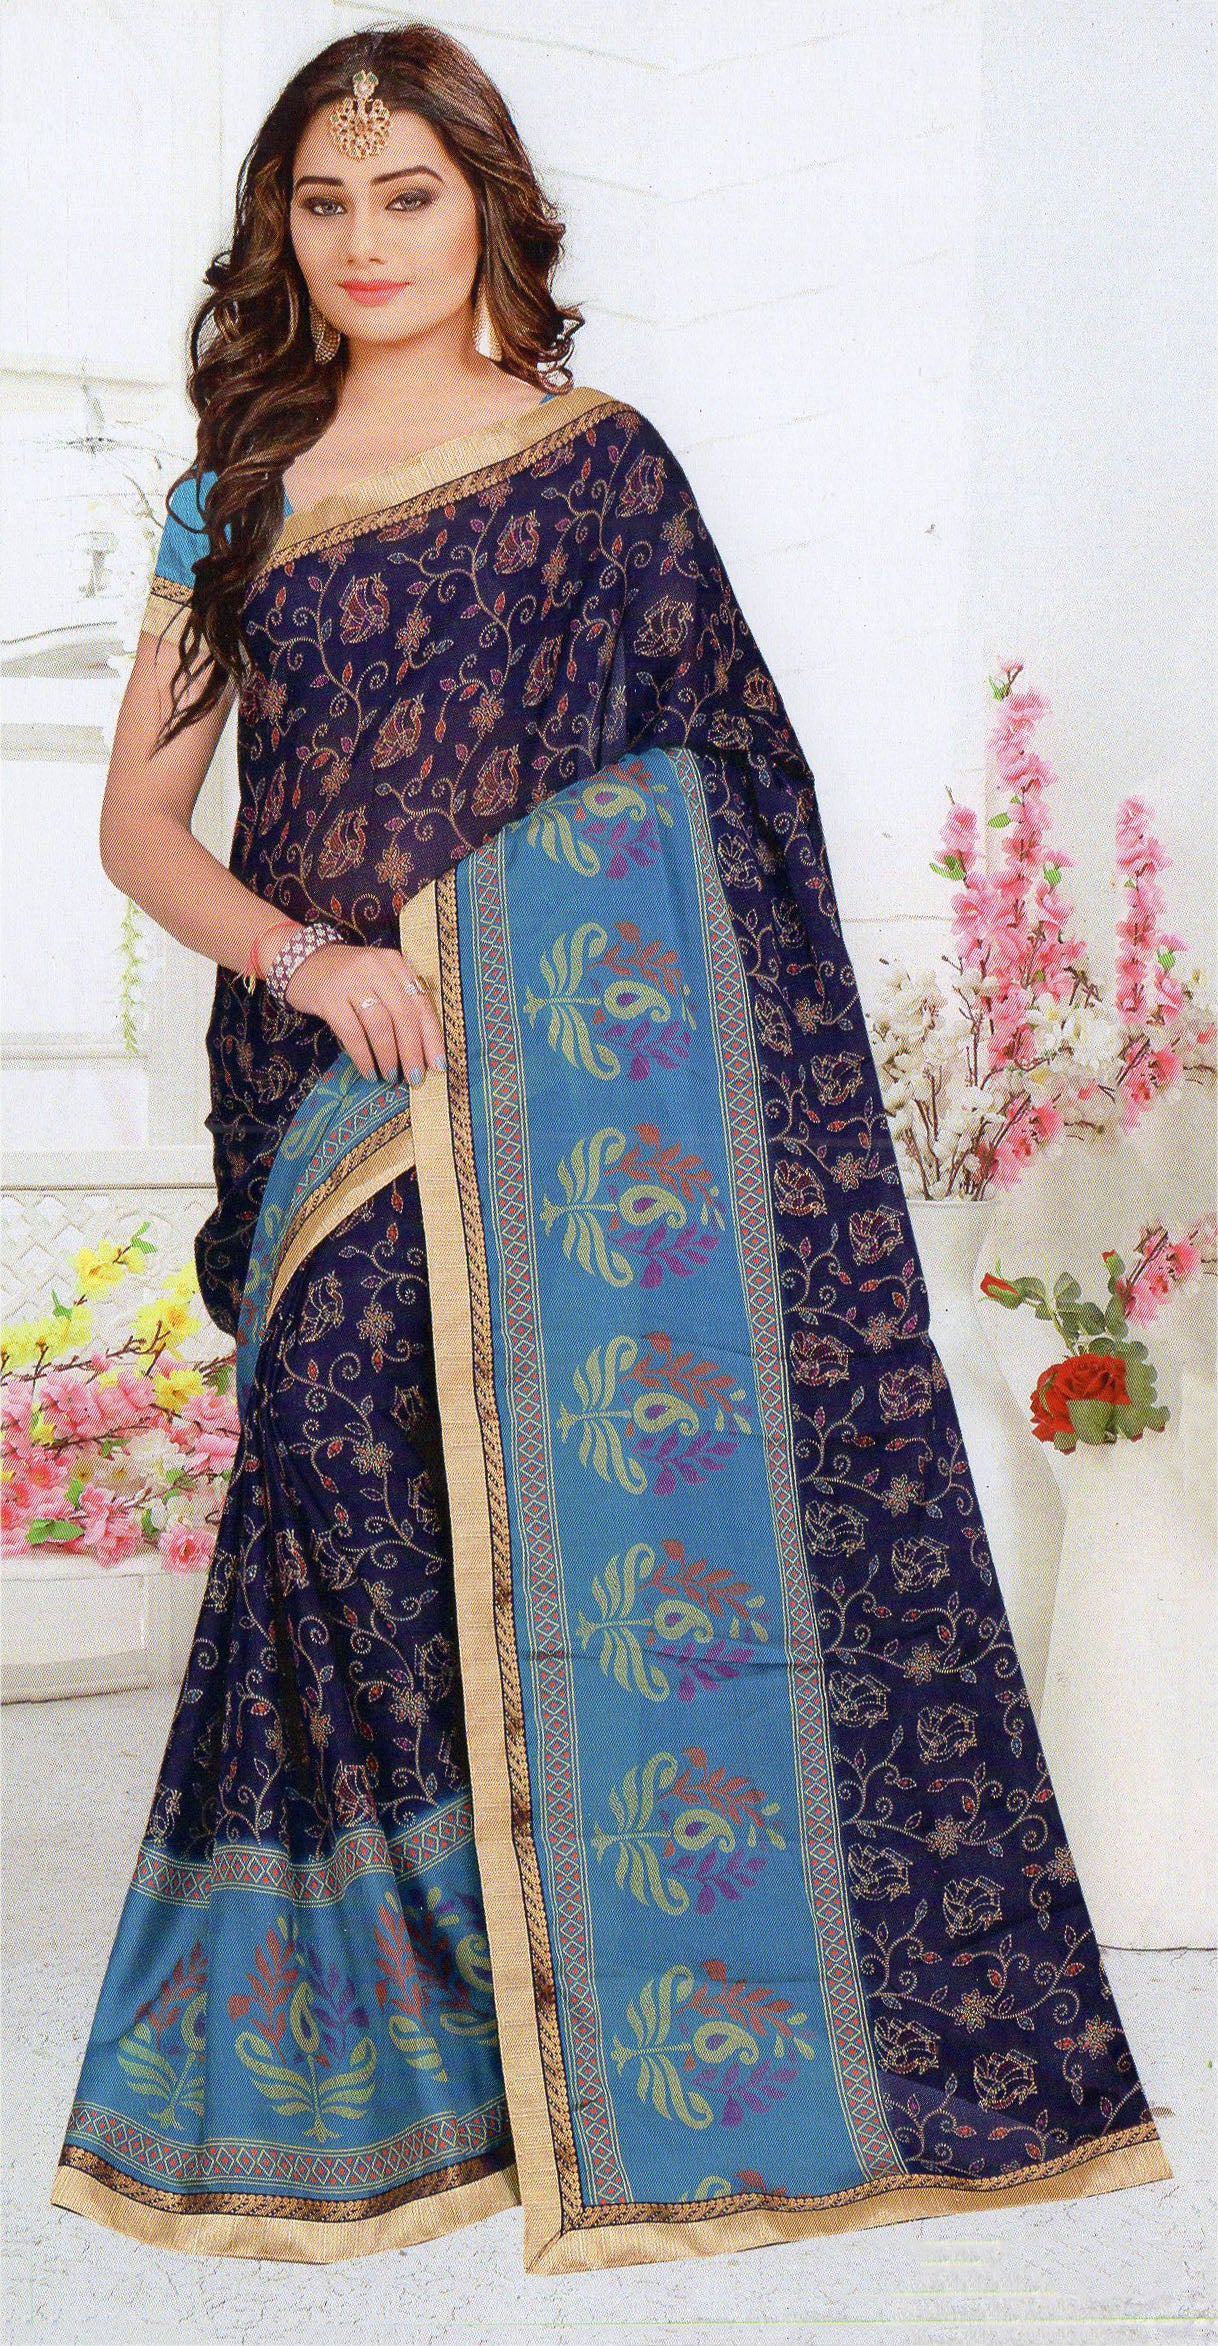 Jyothi-2 Printed Synthetic Saree With Blouse Piece Saree (Blue) By Indians Boutique